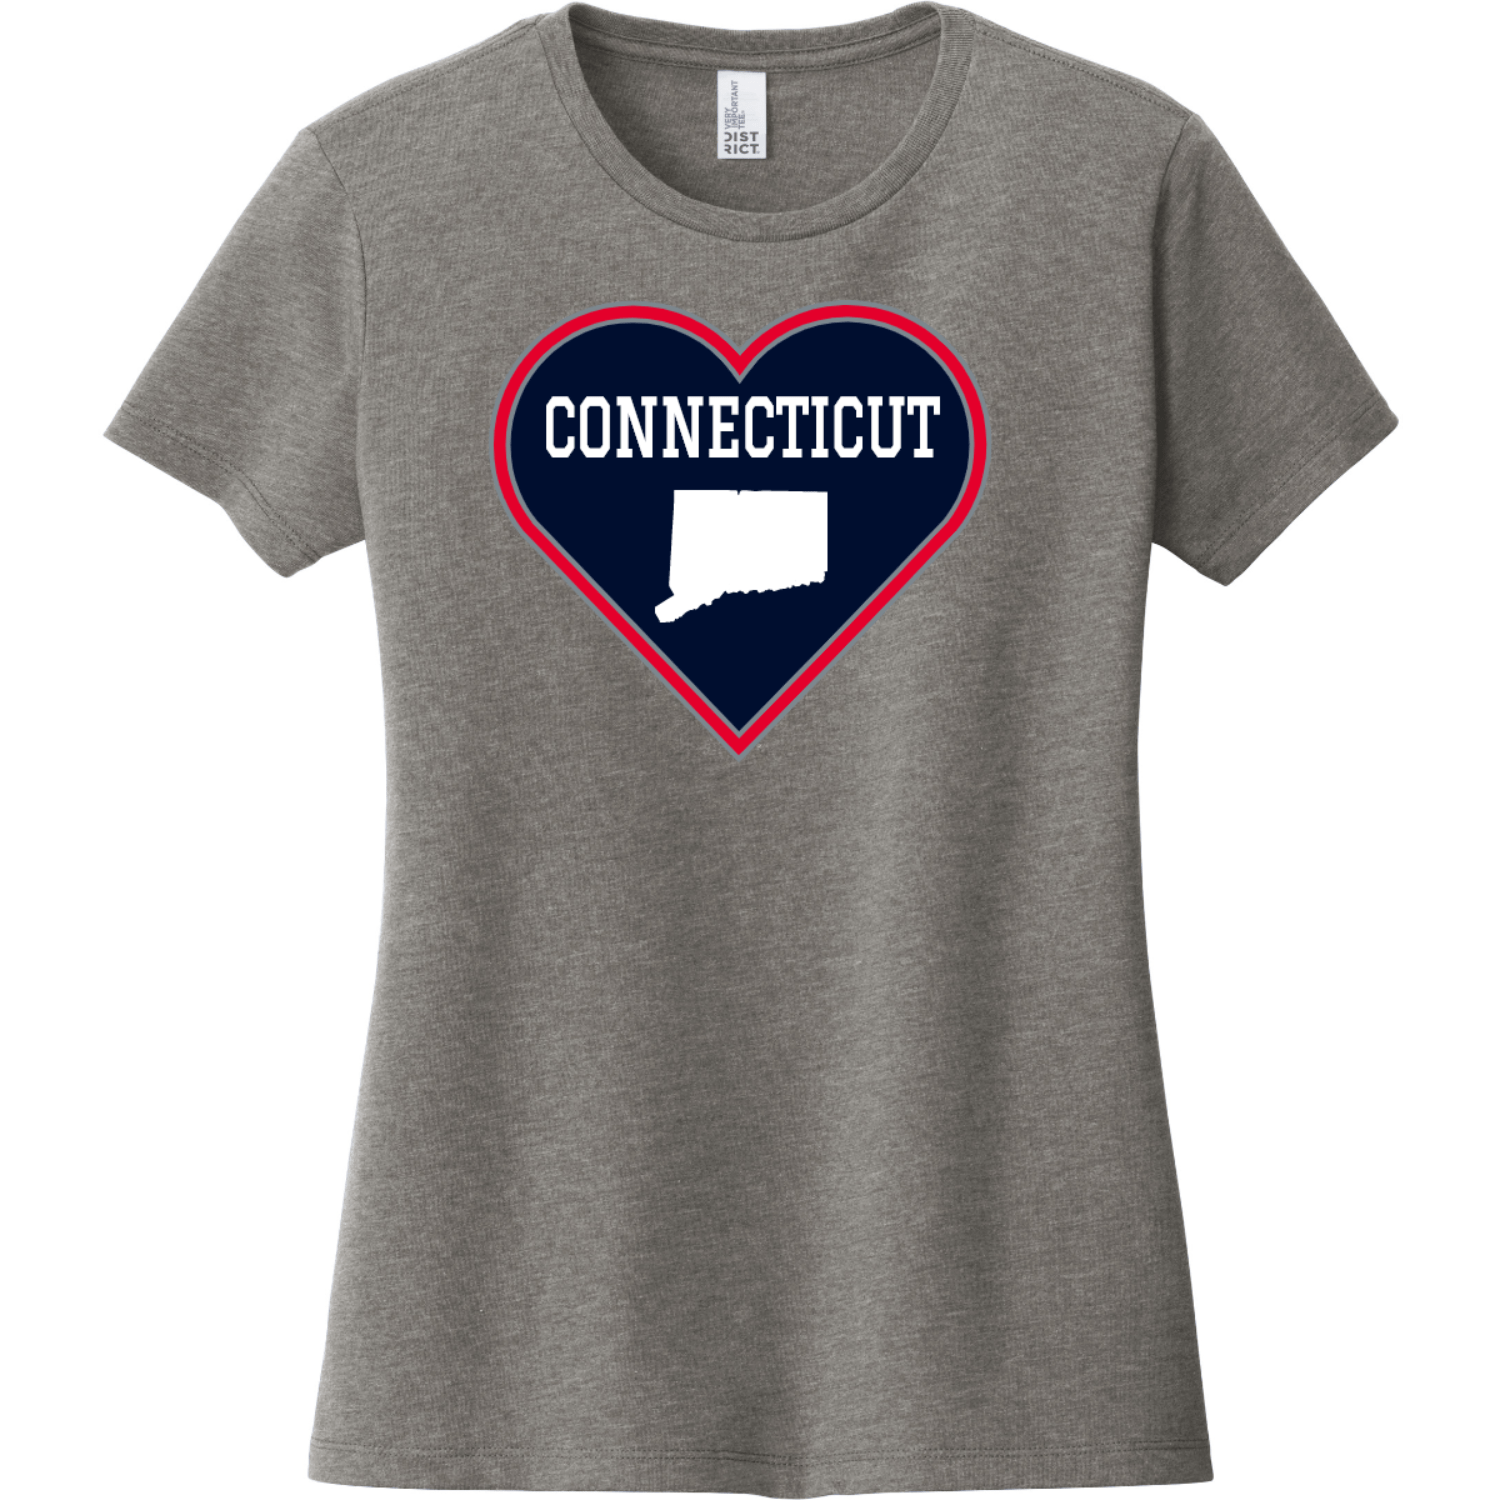 Connecticut Heart State T Shirt Gray Frost District Women's Very Important Tee DT6002